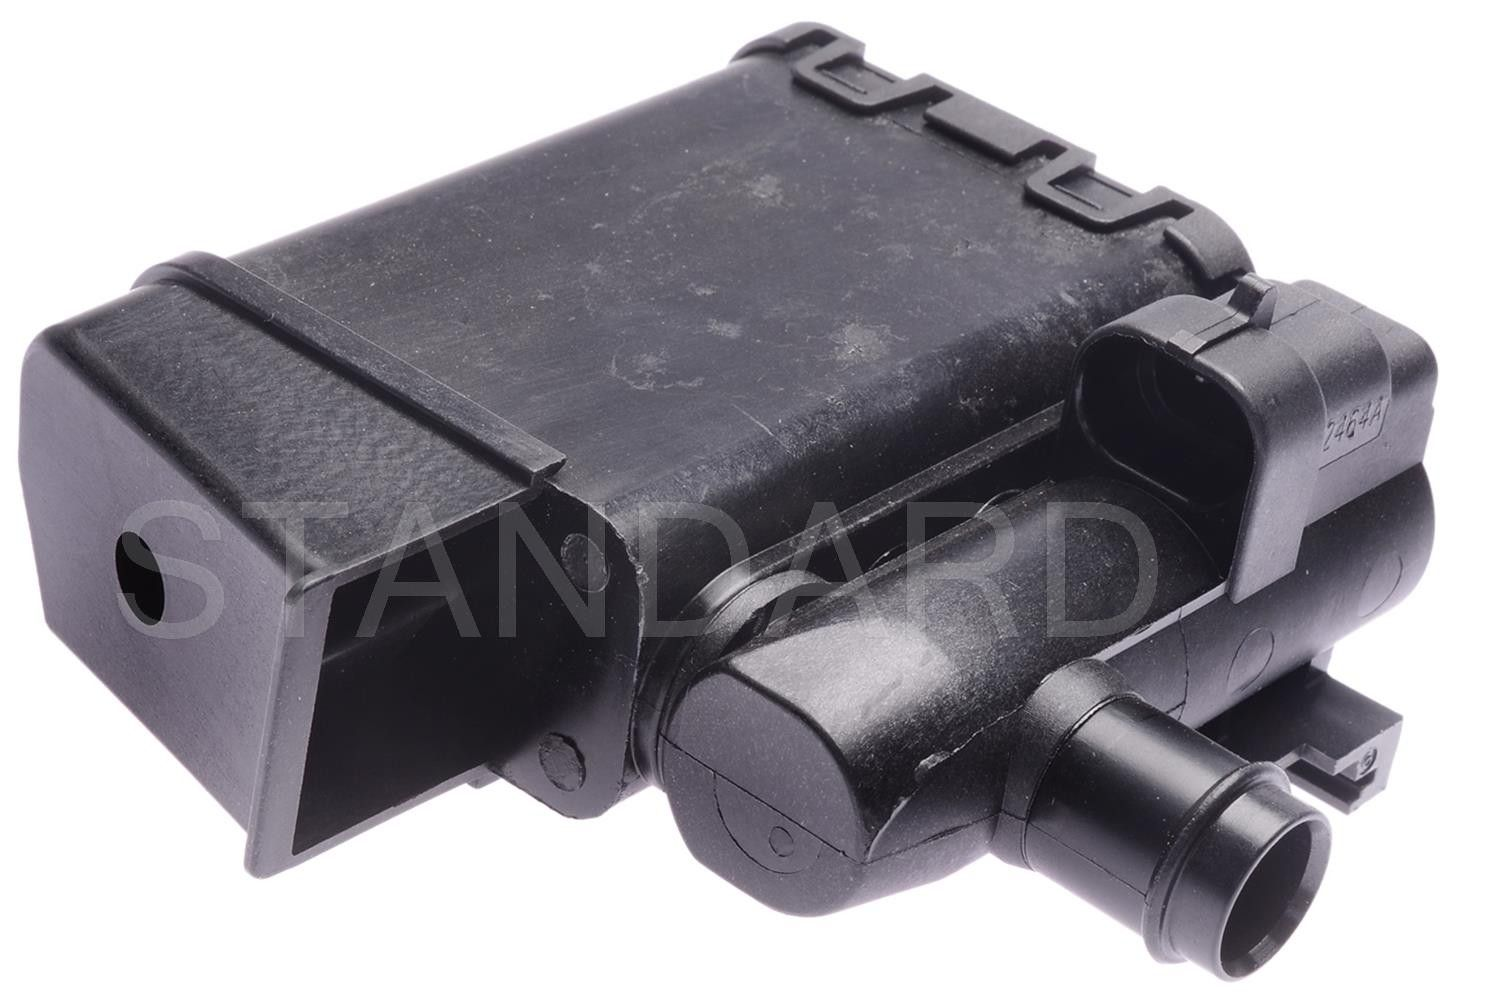 For Chevy GMC Cadillac Saab Ignition Vapor Canister Vent Solenoid Standard CVS6